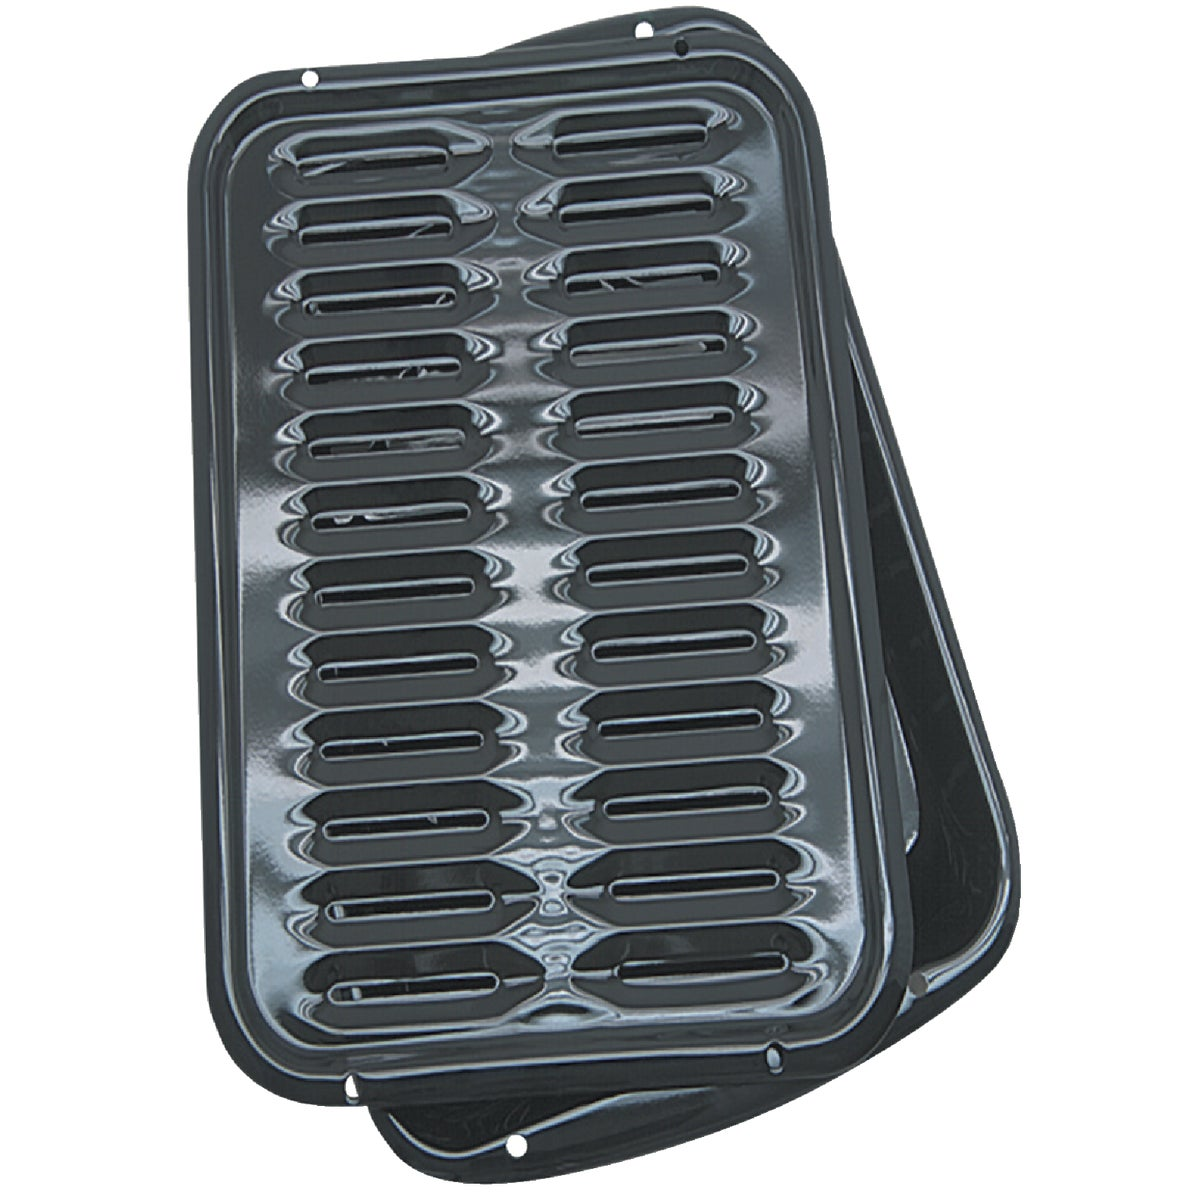 BROIL N' BAKE PAN - BP106X by Range Kleen Mfg Inc